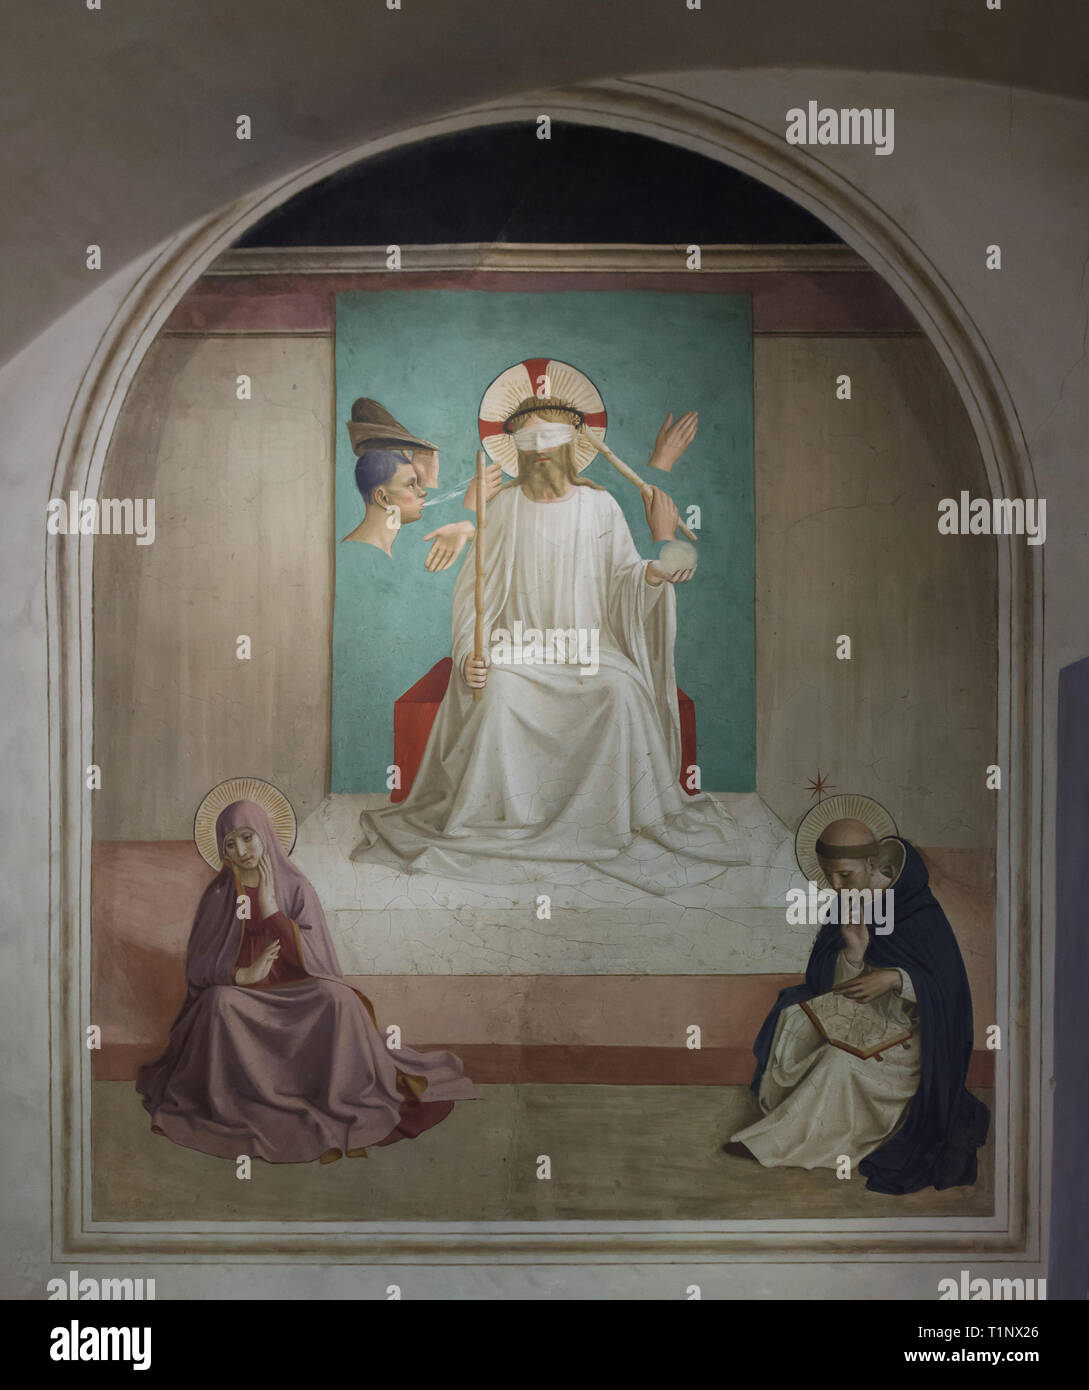 Fresco 'Mocking of Christ' by Italian Early Renaissance painter Fra Angelico (1440-1442) painted on the wall in the monk's cell at the San Marco Convent (Convento di San Marco), now the San Marco Museum (Museo Nazionale di San Marco) in Florence, Tuscany, Italy. - Stock Image